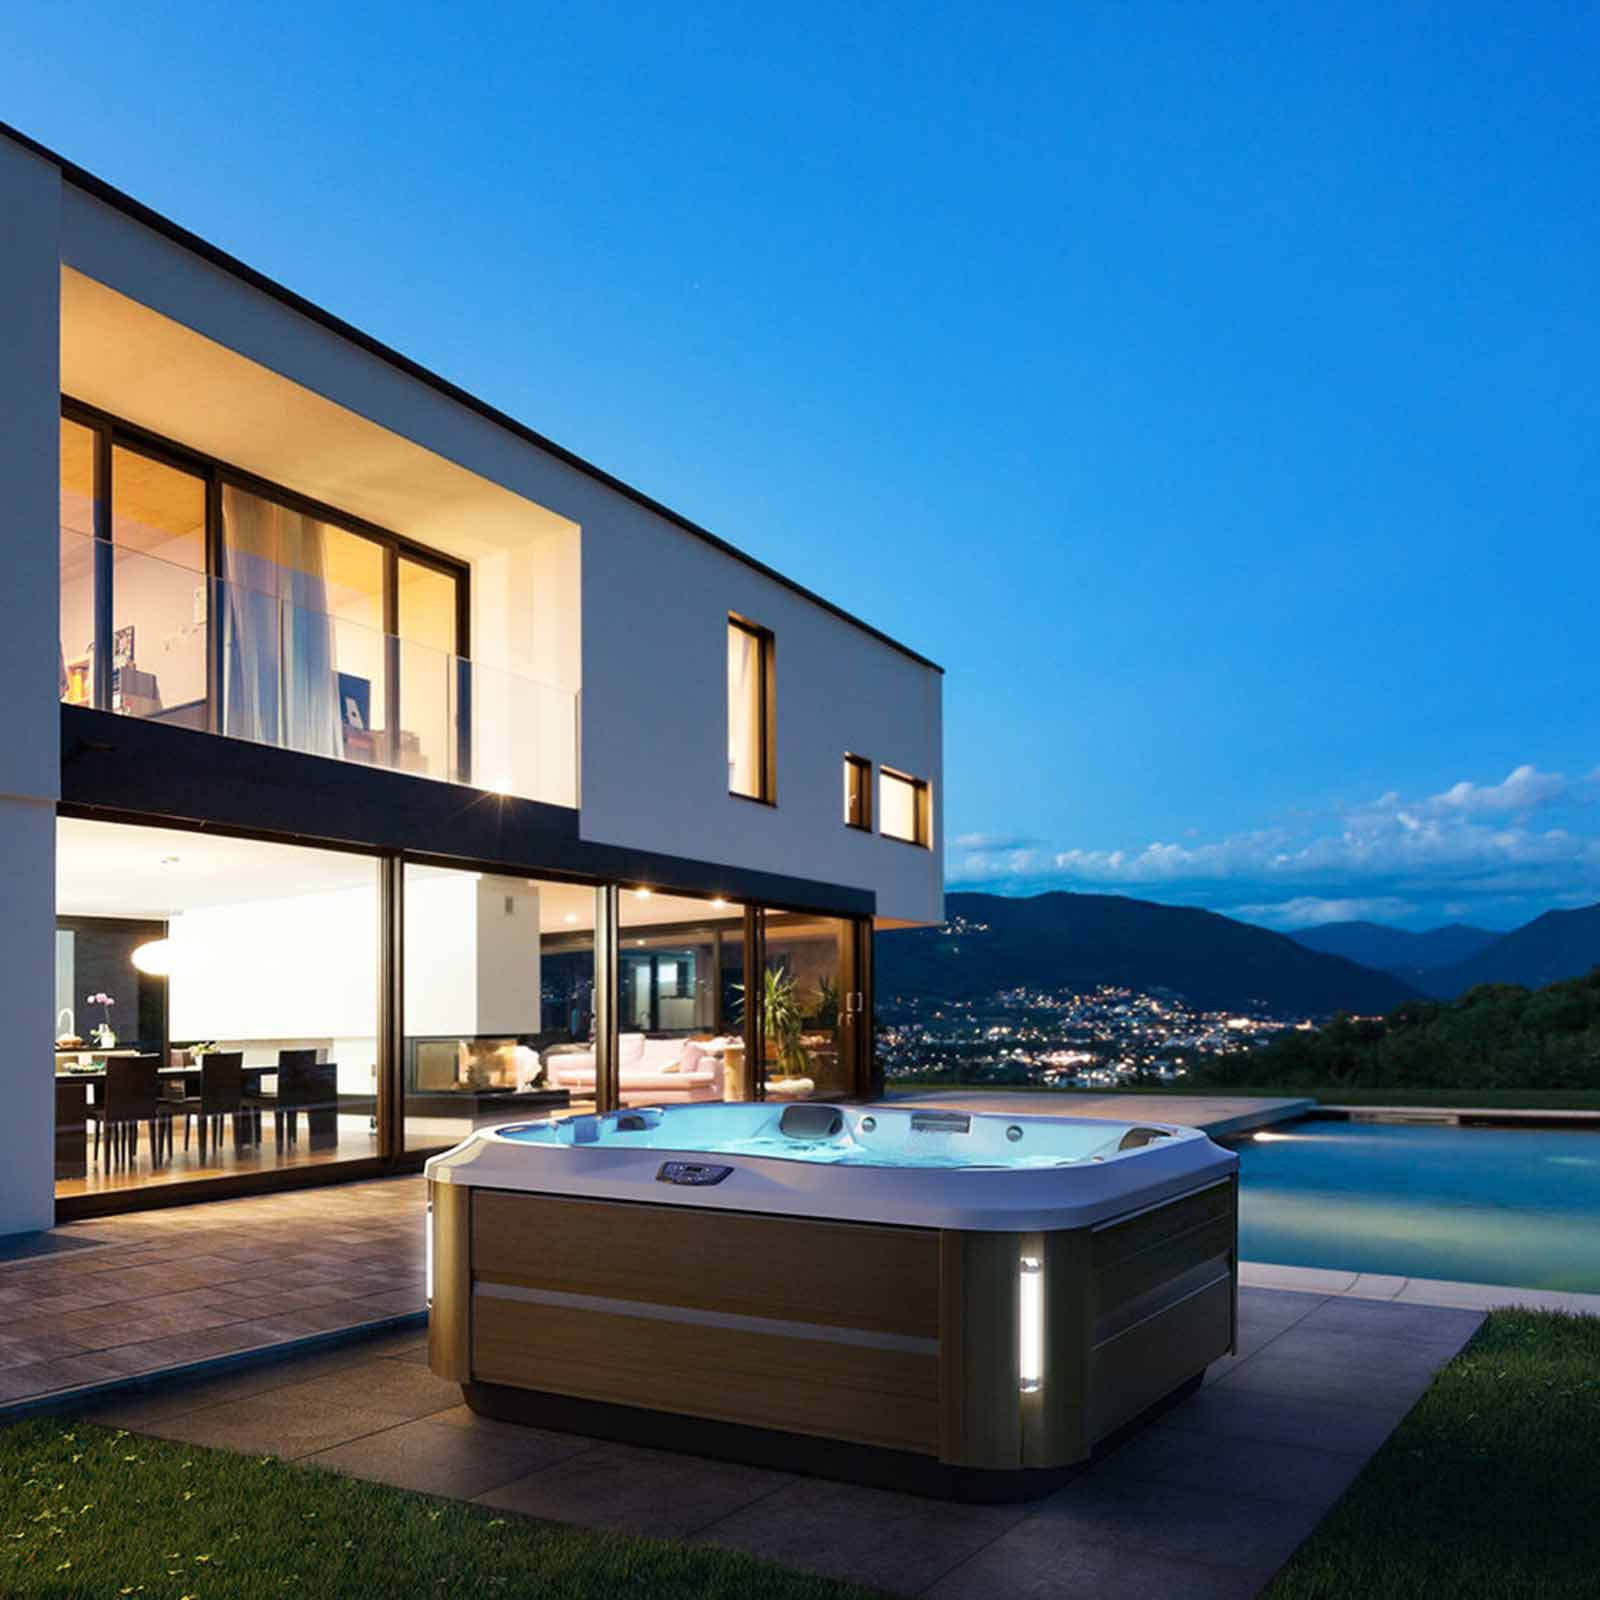 Jacuzzi hot tubs reno – shop the best deals for Jacuzzi hot tubs and spas near you